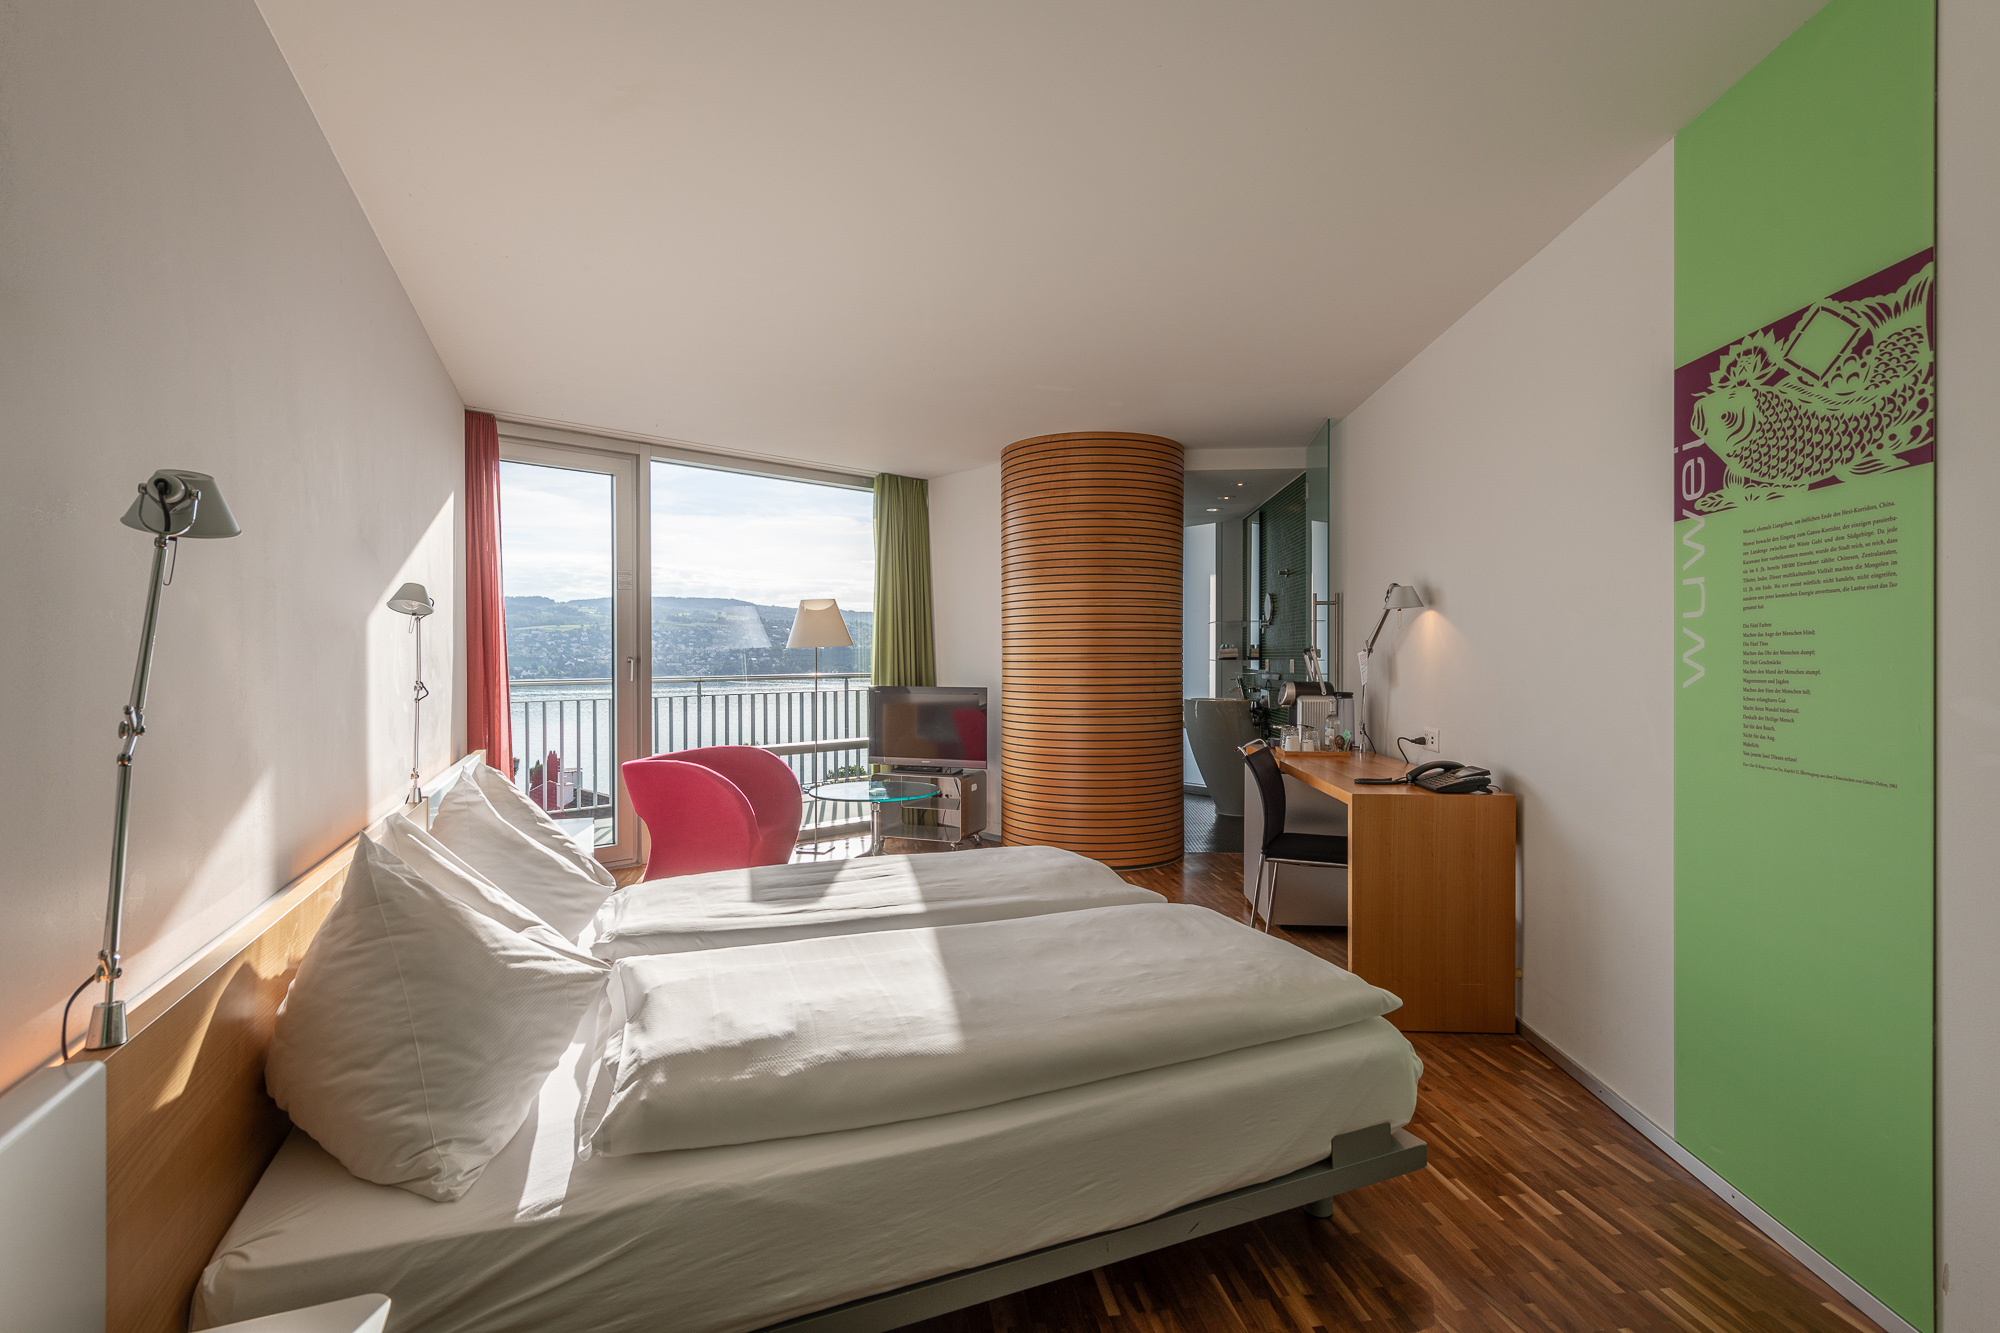 Superior lake view room with two beds